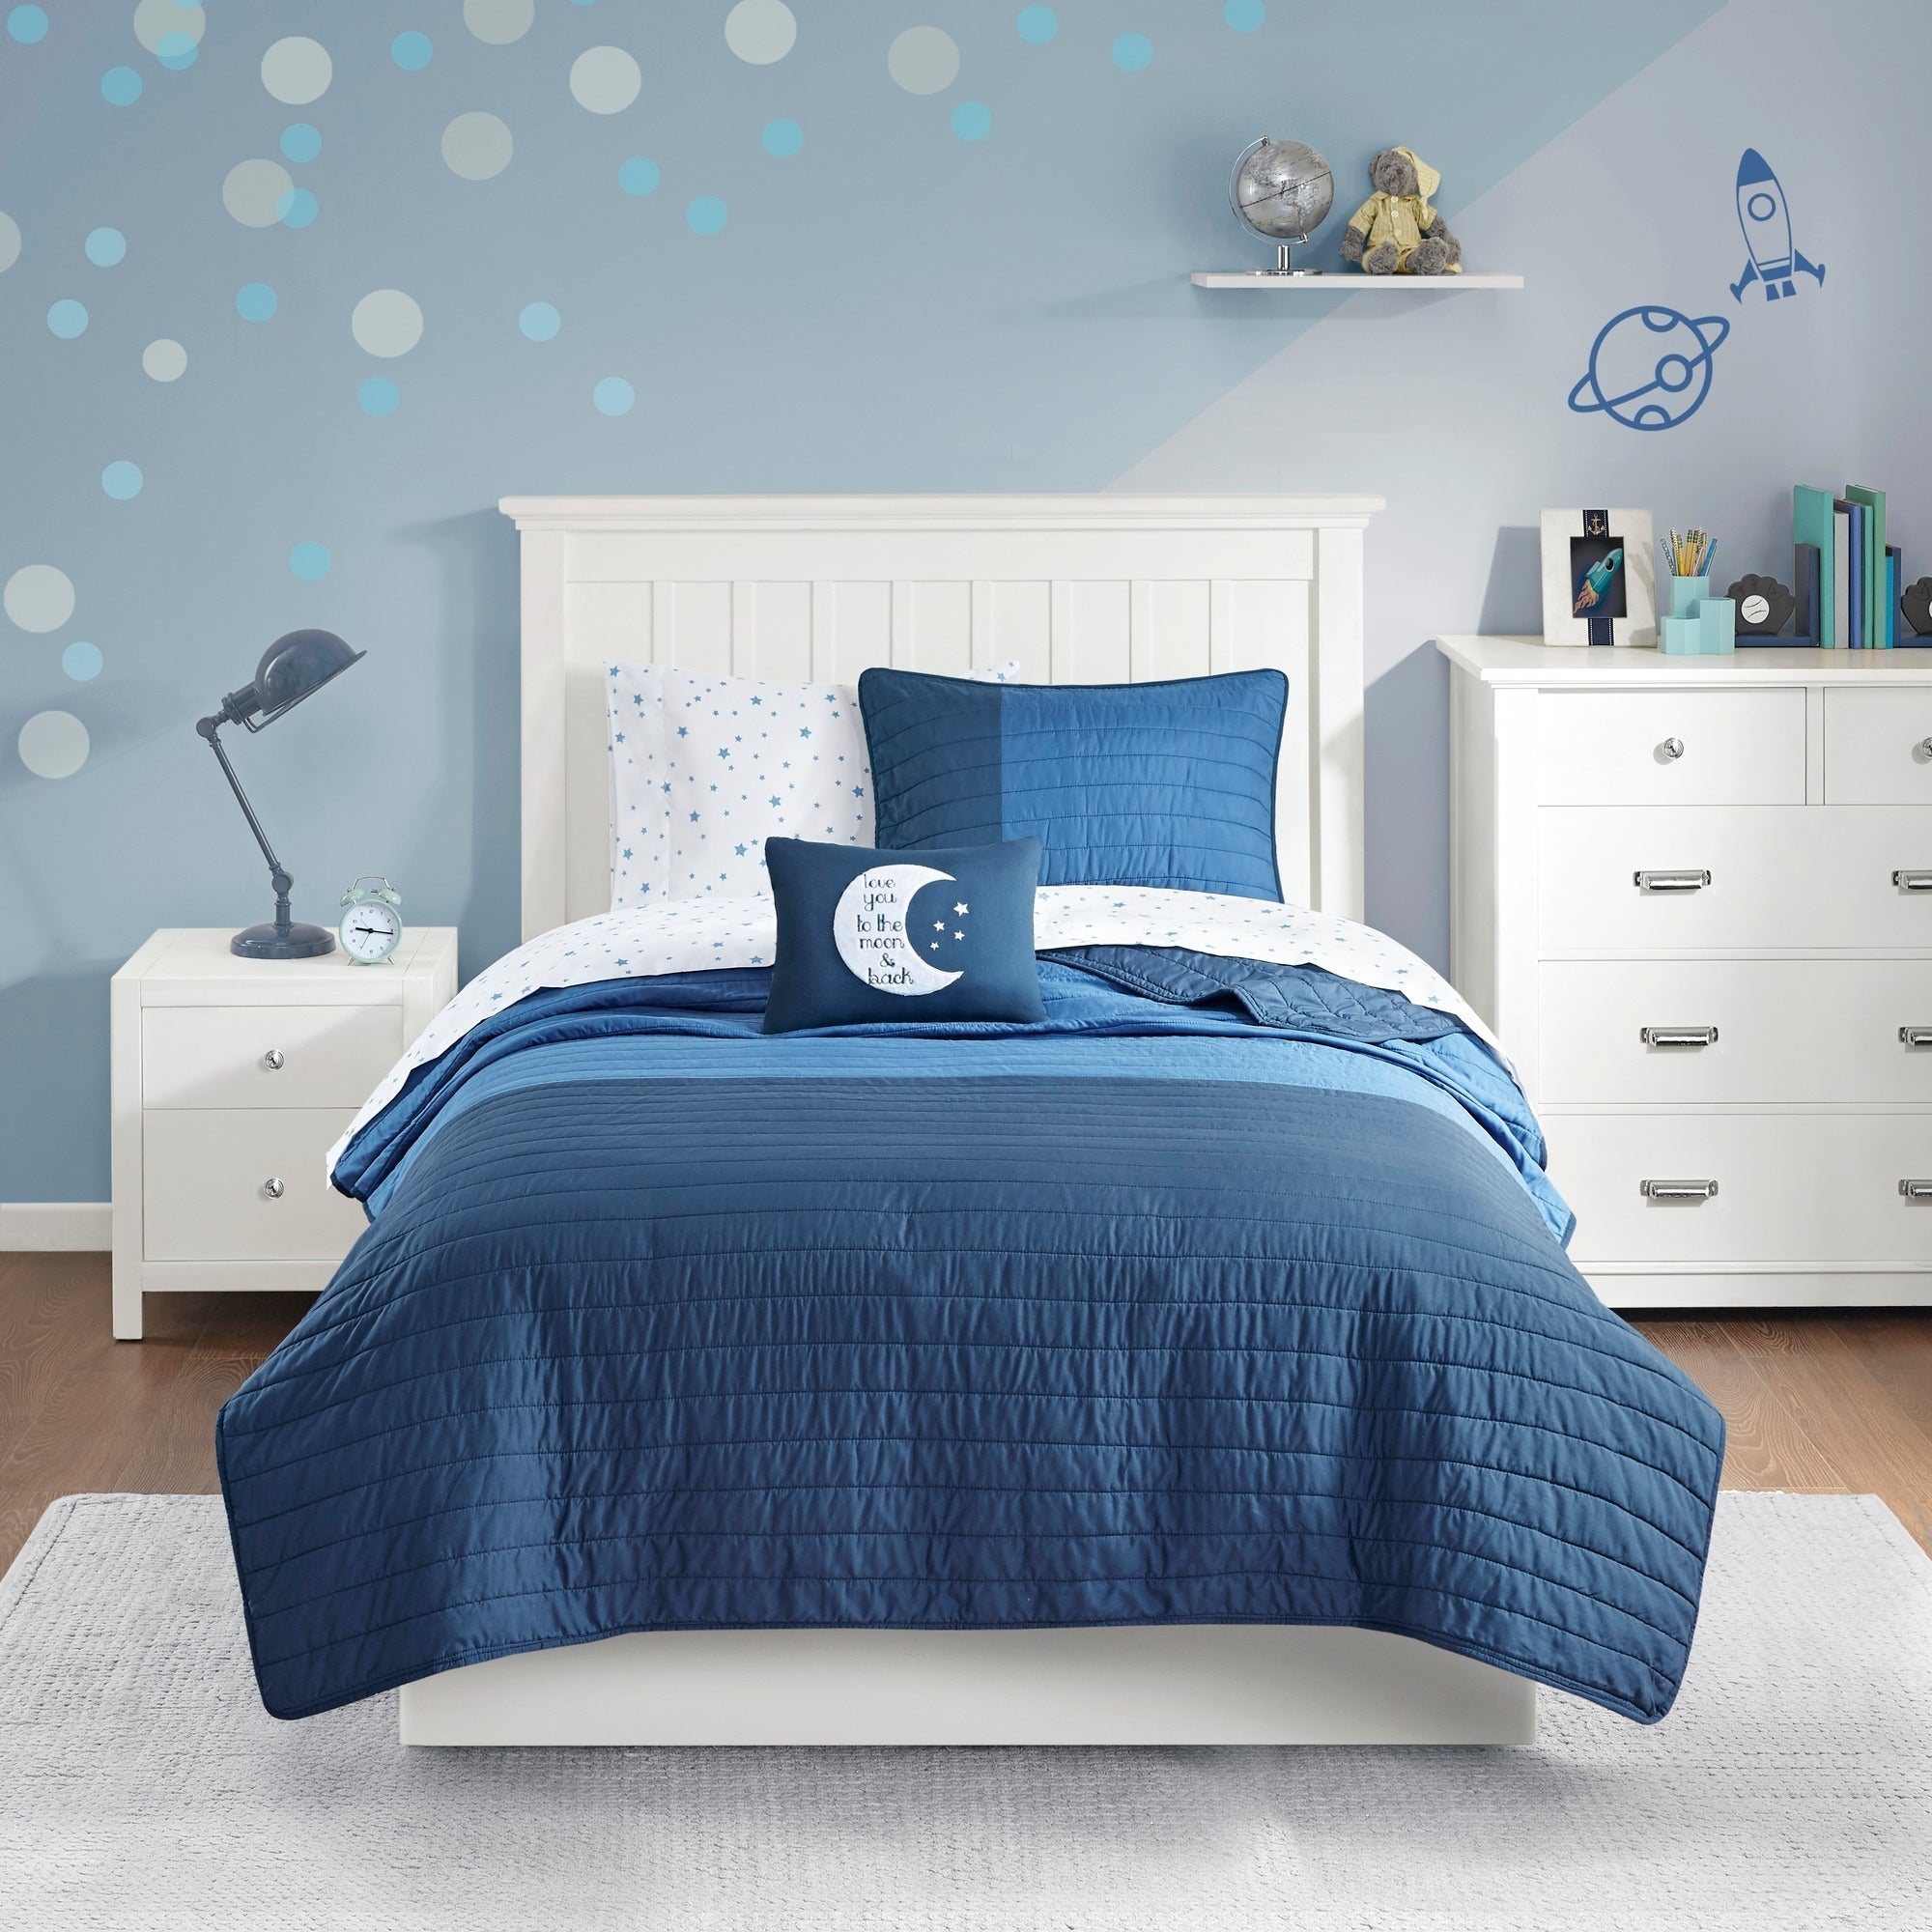 Soft /& Comfy 100/% Cotton Twin, White by Crescent Bedding Twin Flat Sheet Only